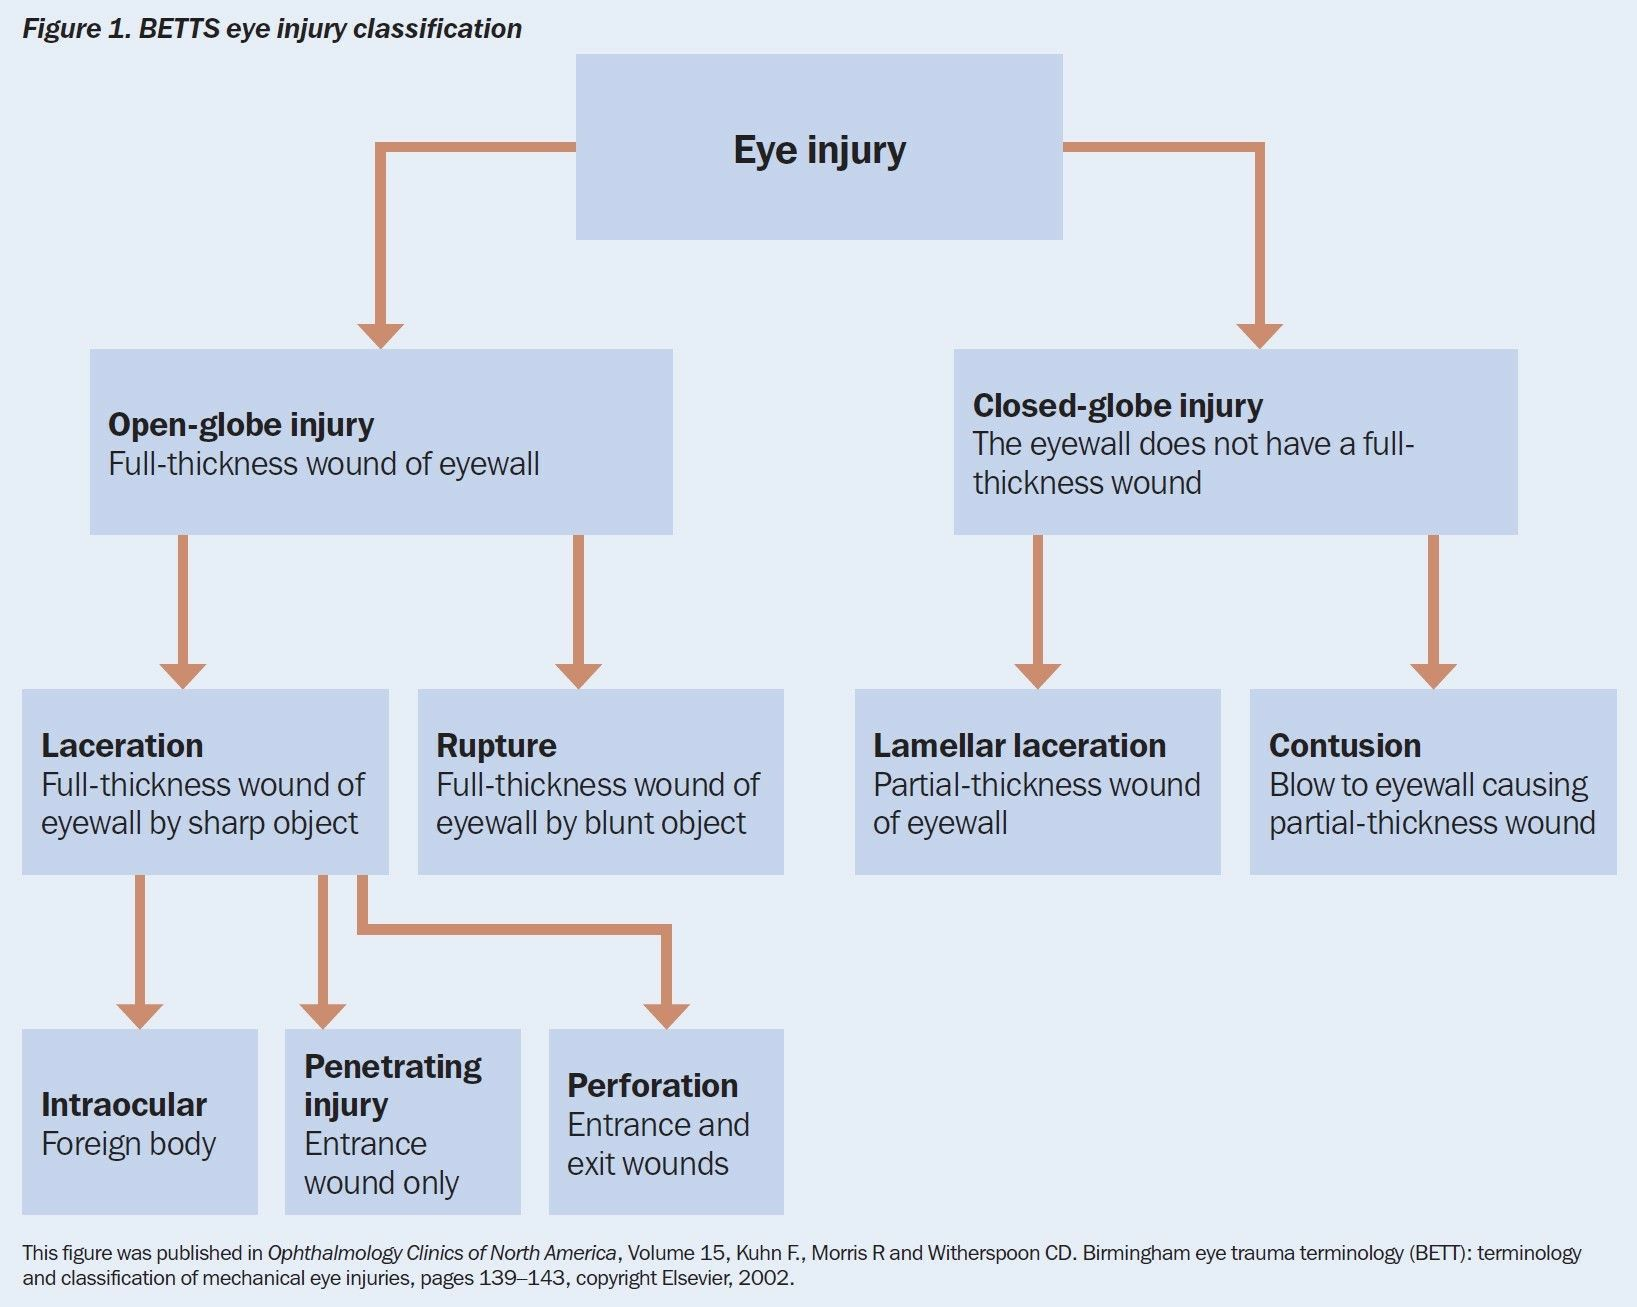 Bett System The Birmingham Eye Trauma Terminology System Bett Classification